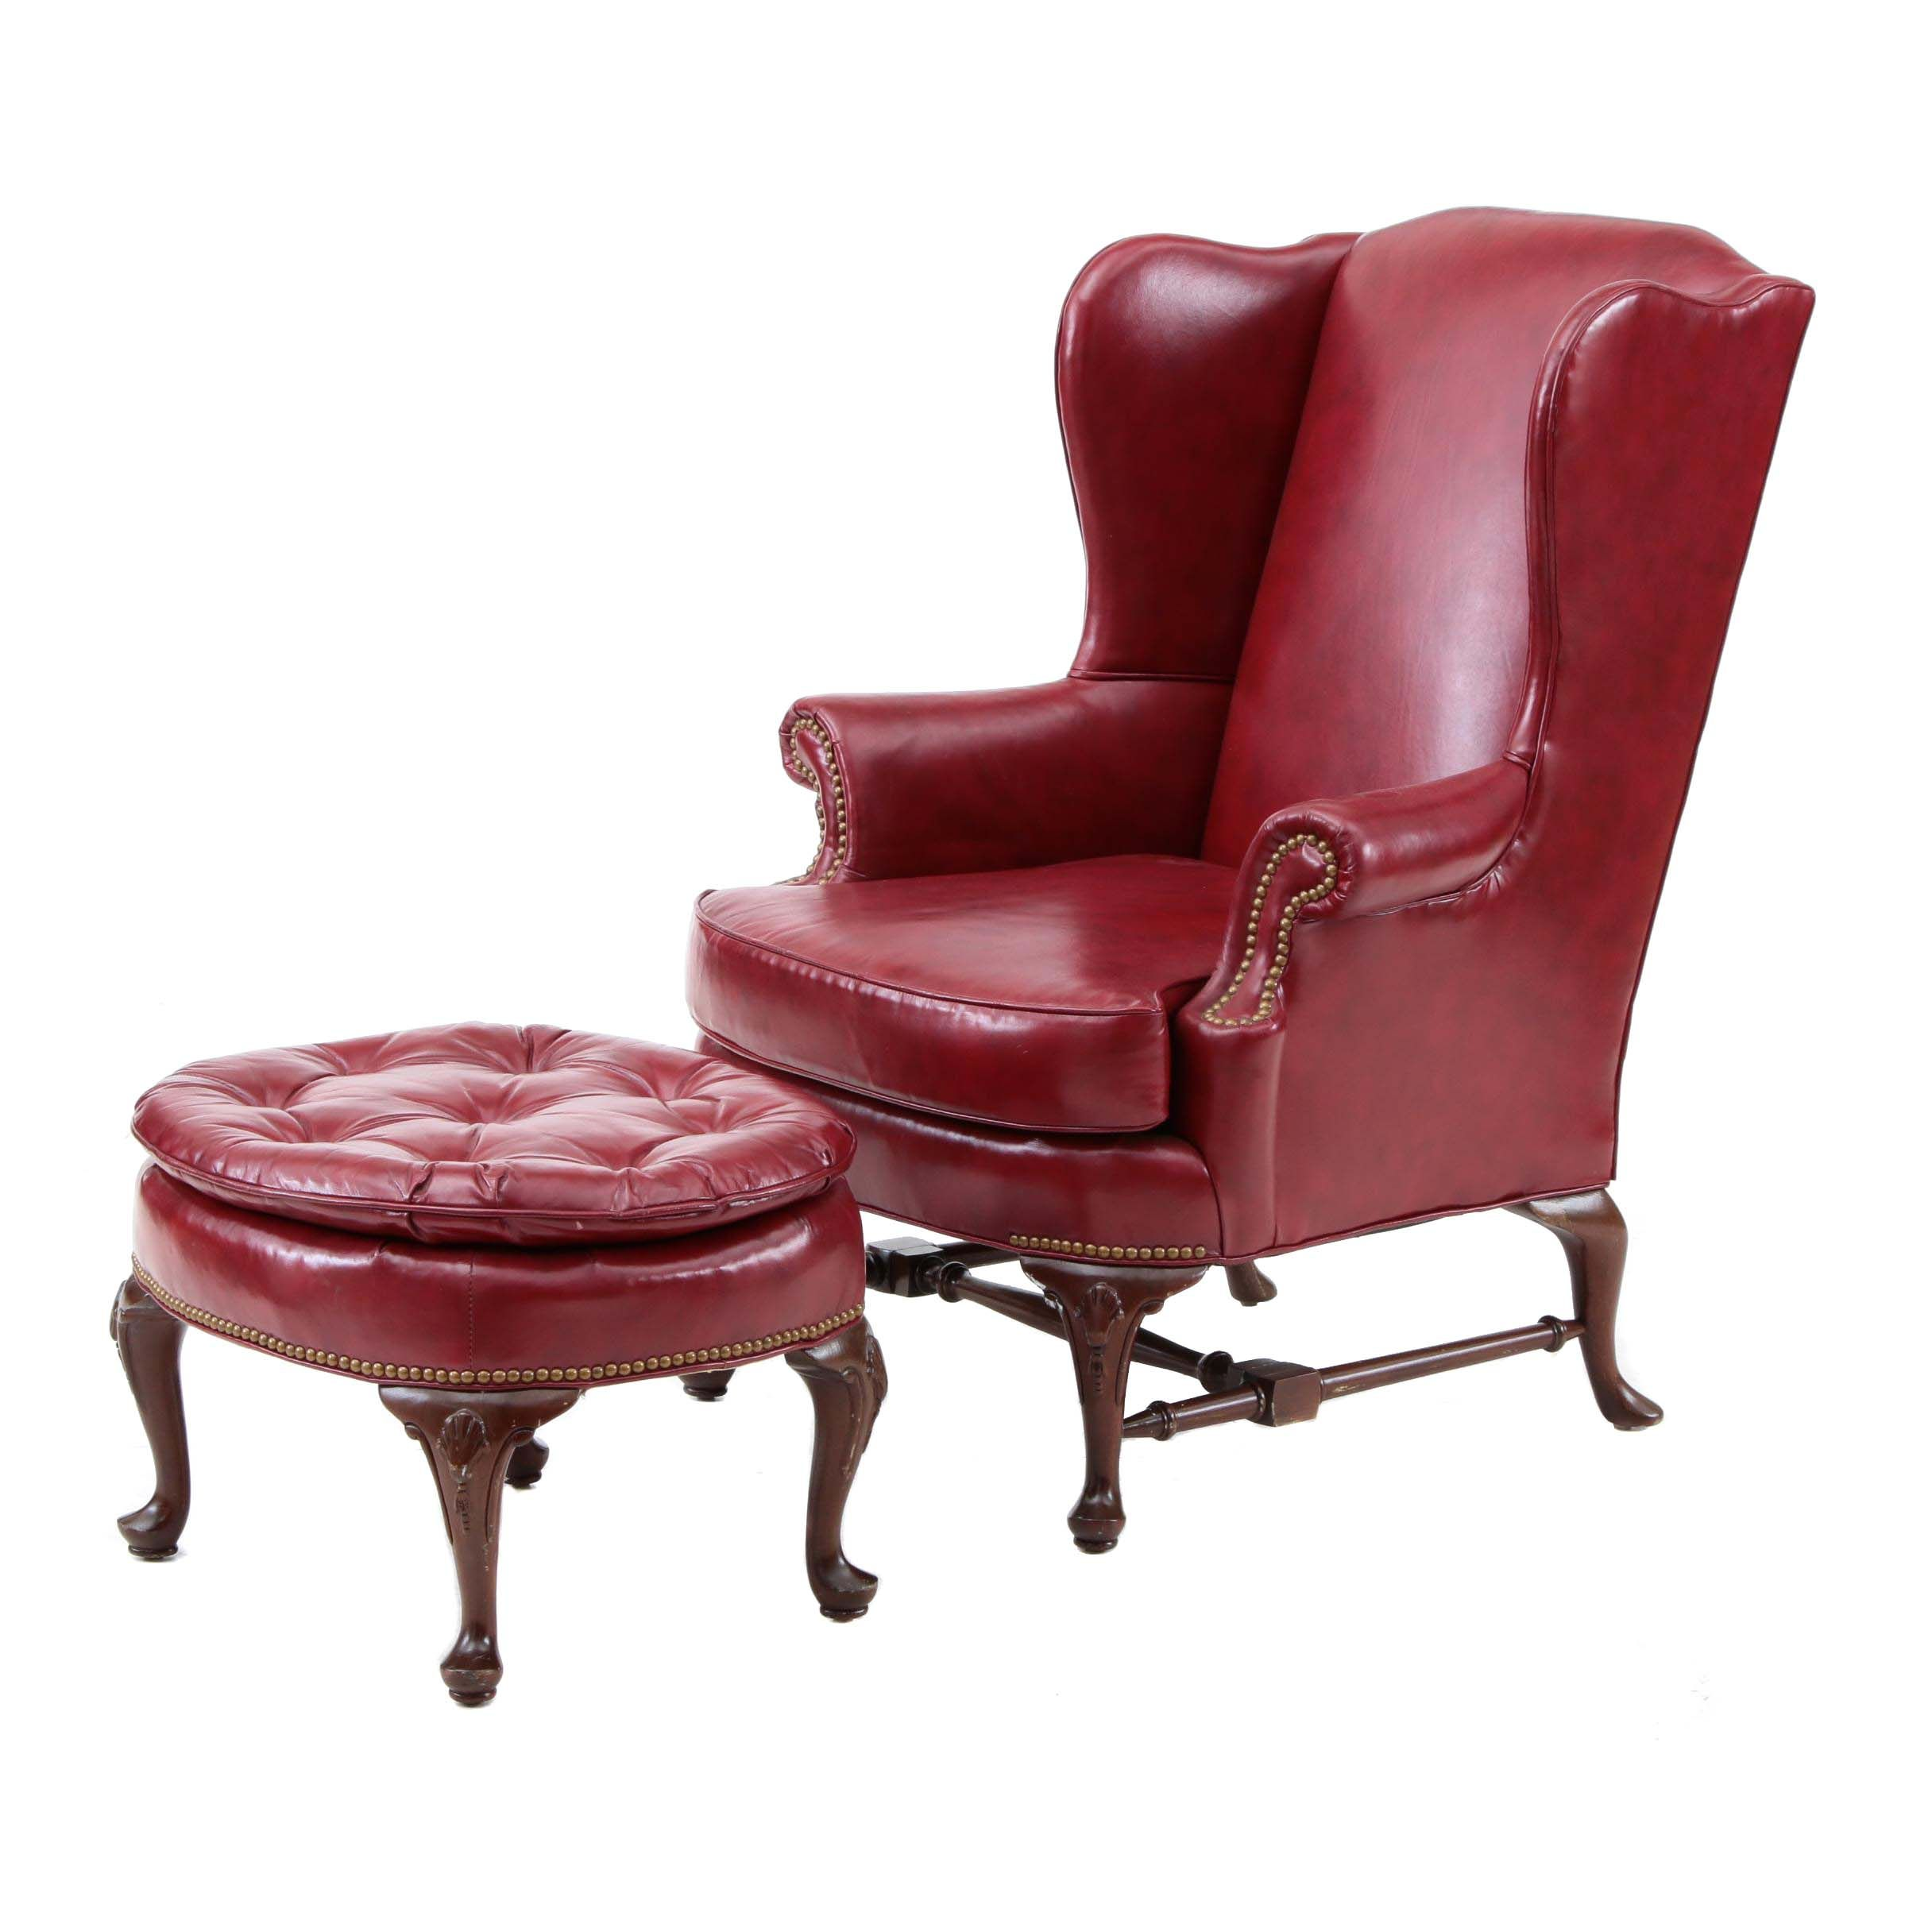 queen anne wingback chair leather wooden school chairs style wing back arm by north hickory furniture co ebth